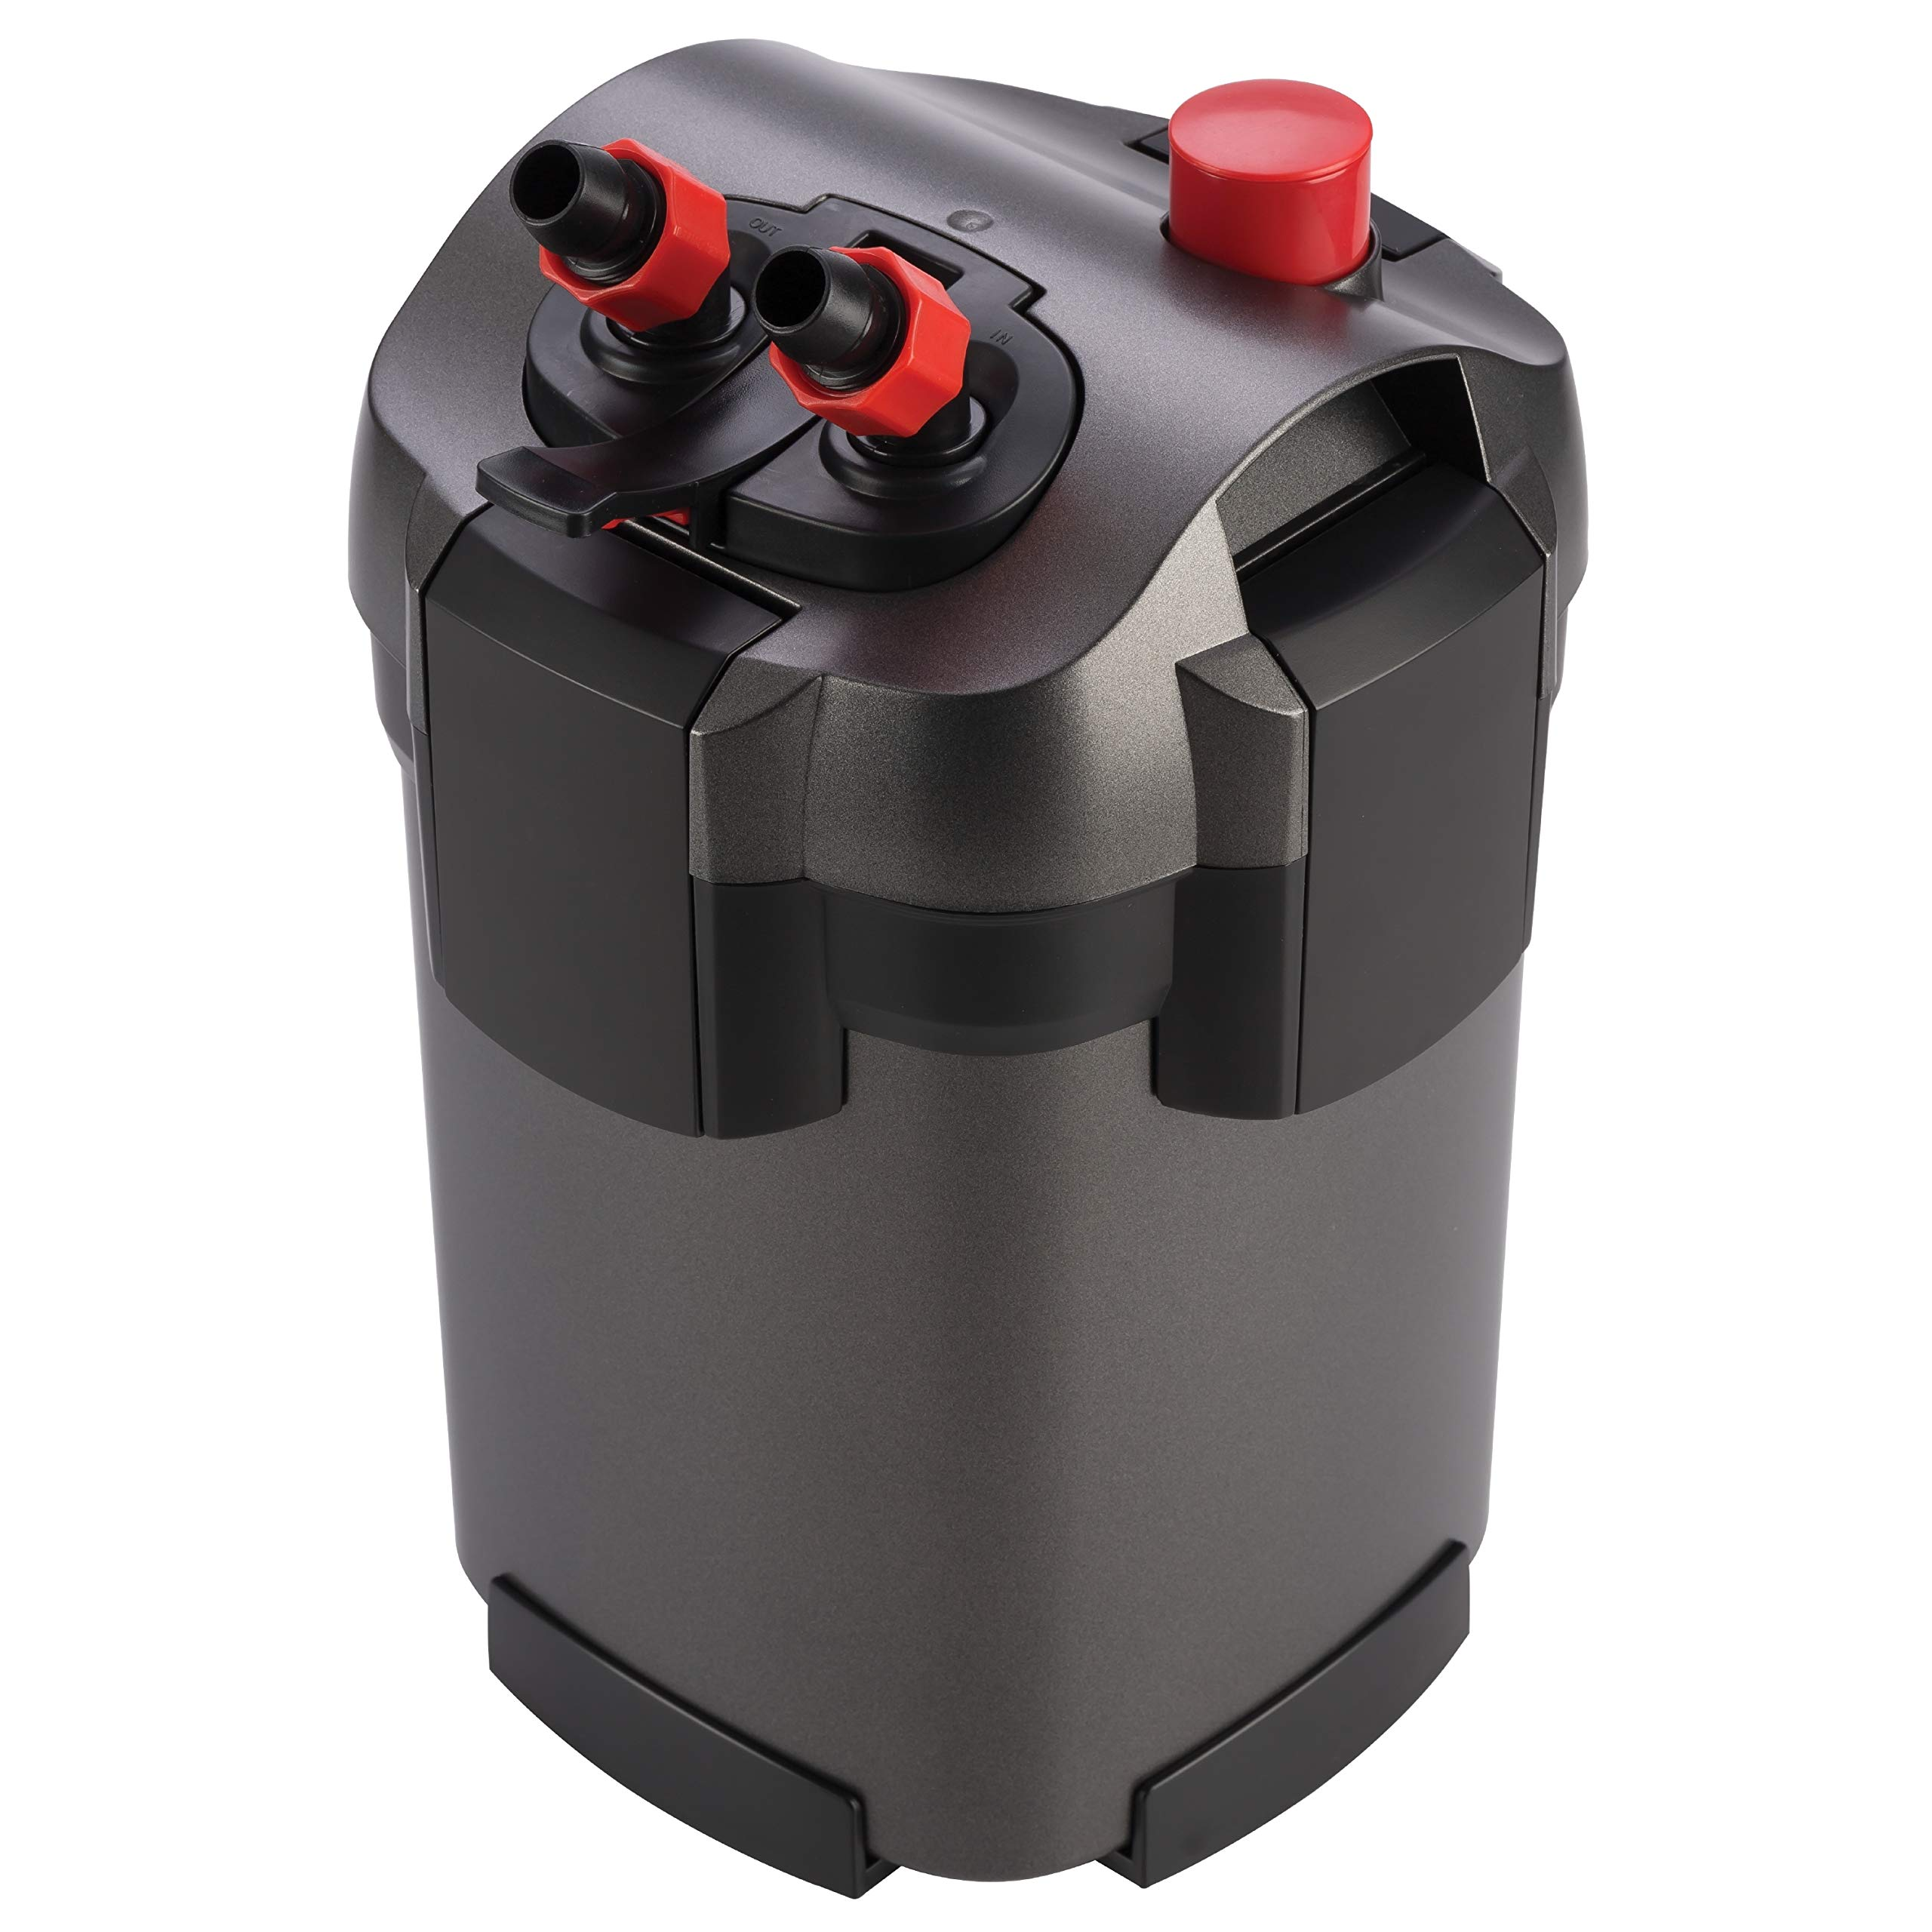 MarineLand Magniflow Canister Filter for Aquariums by MarineLand